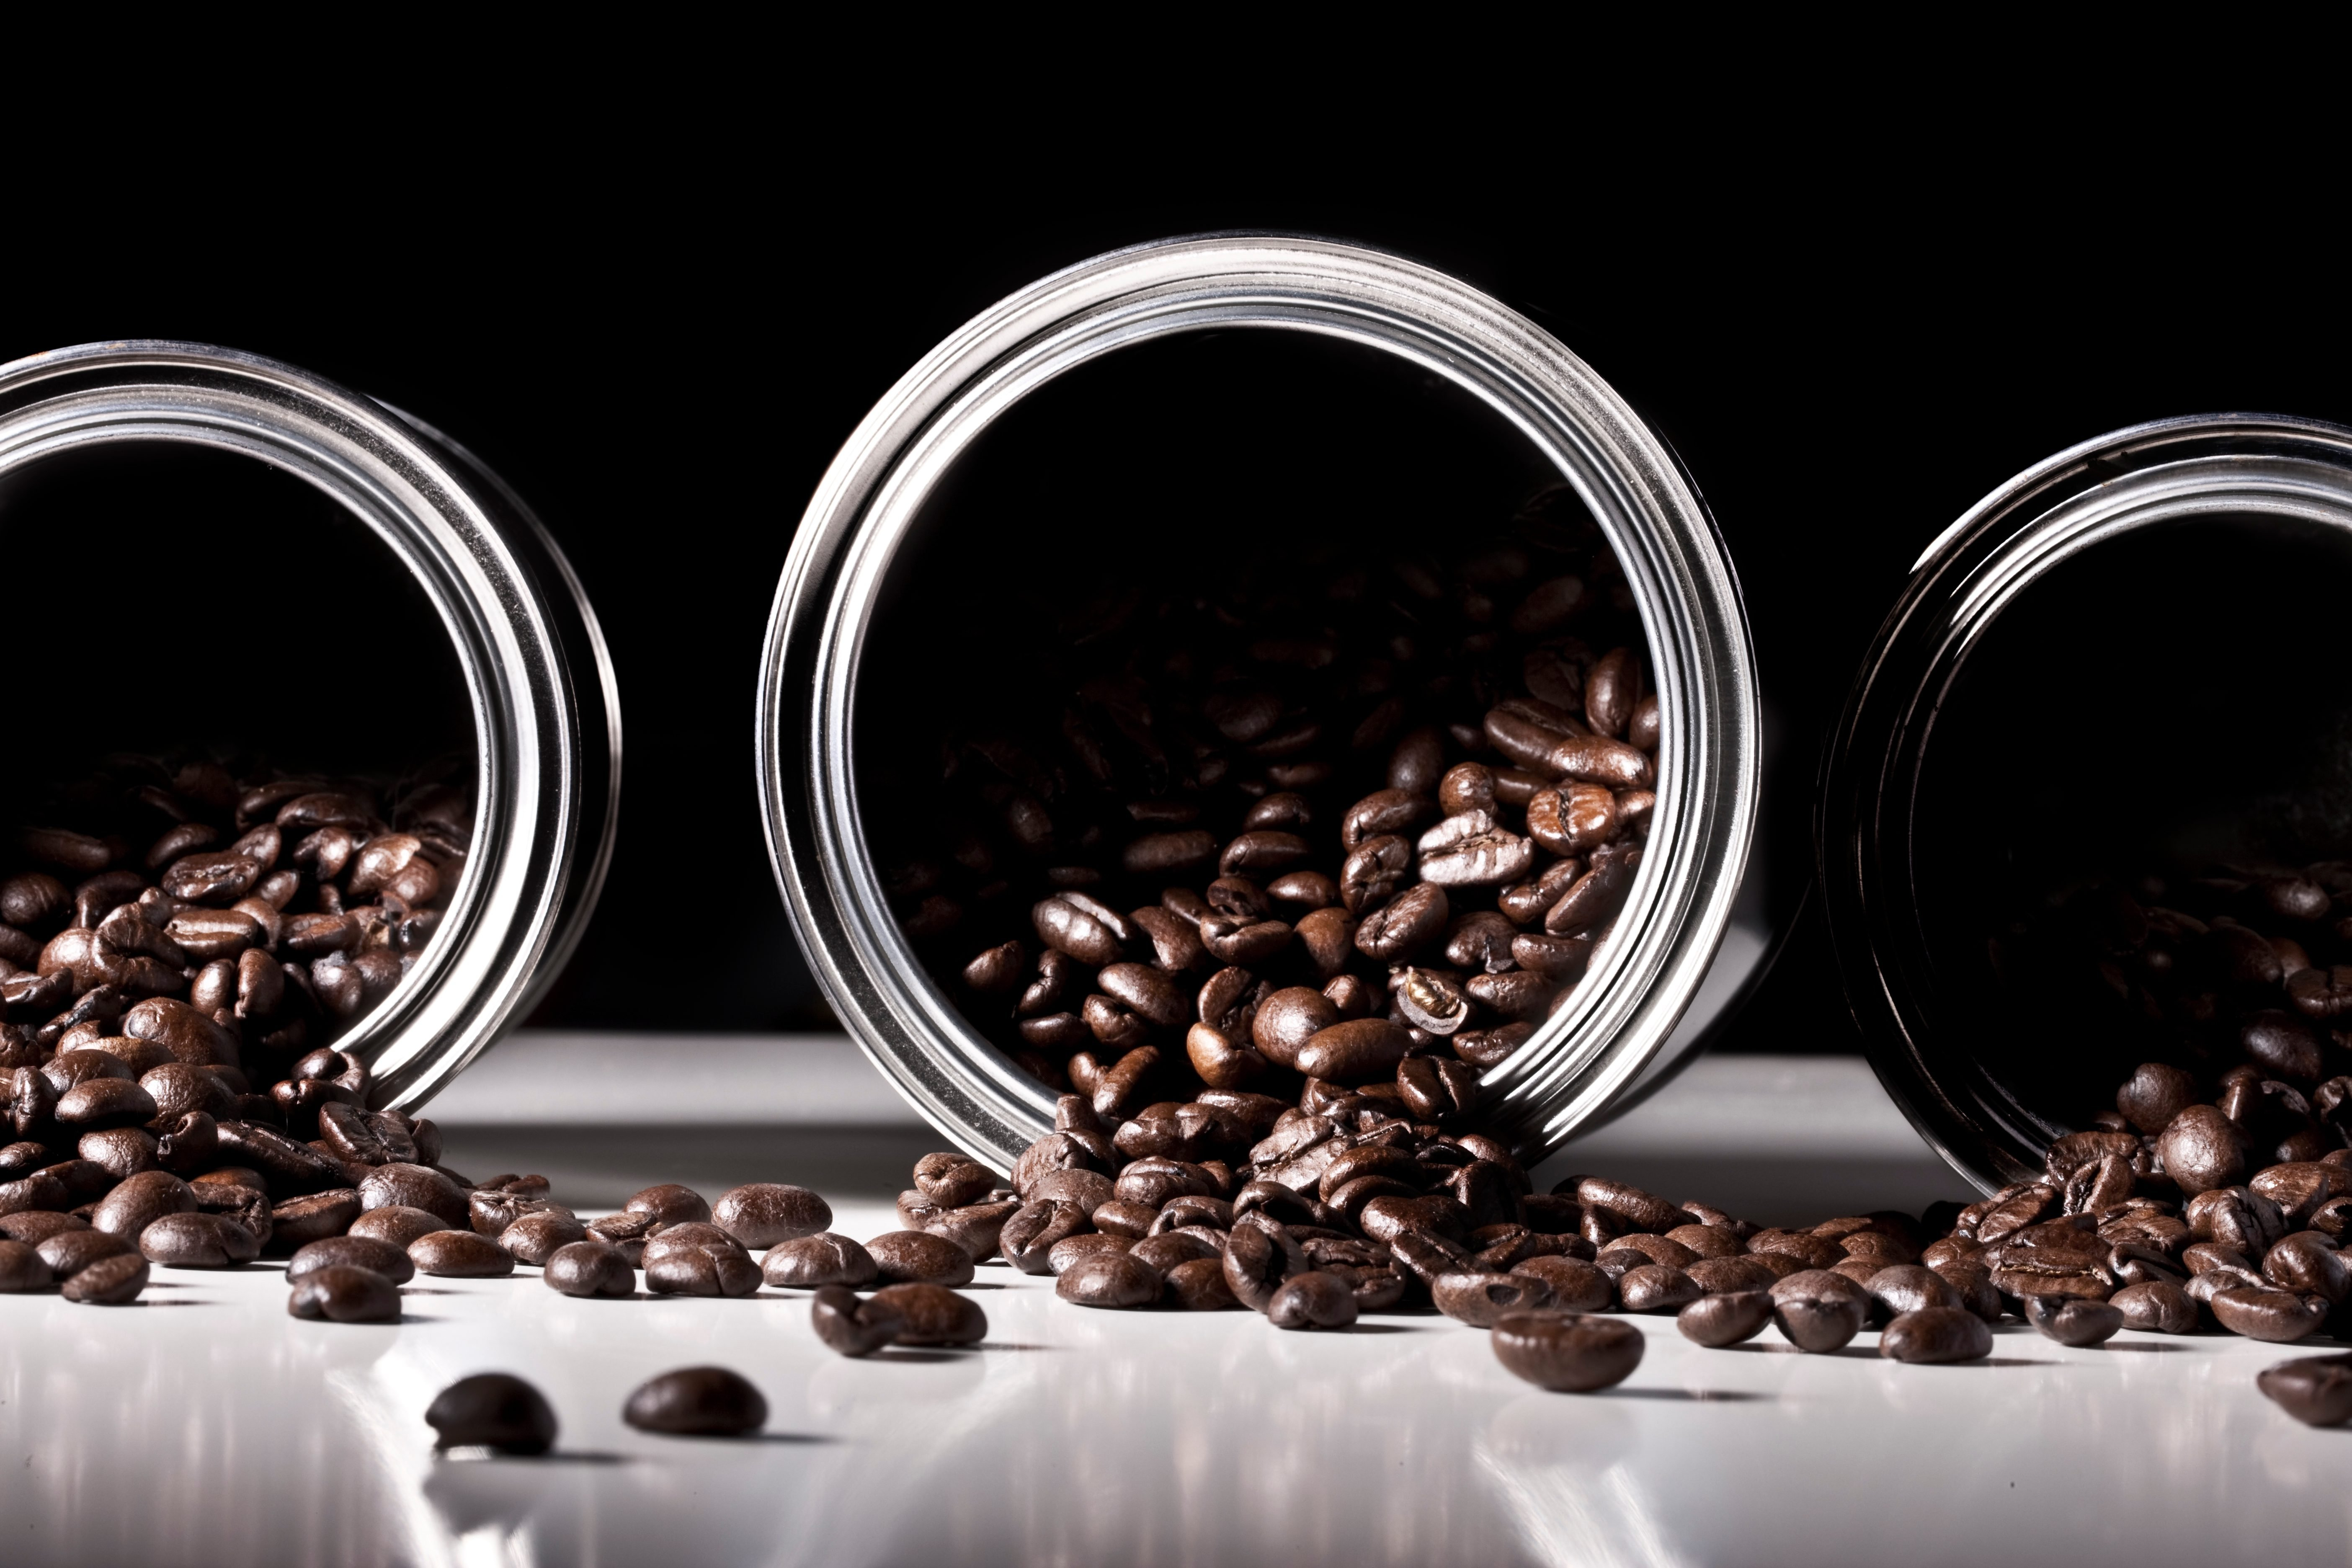 Studio shot of coffee beans spilling from tins